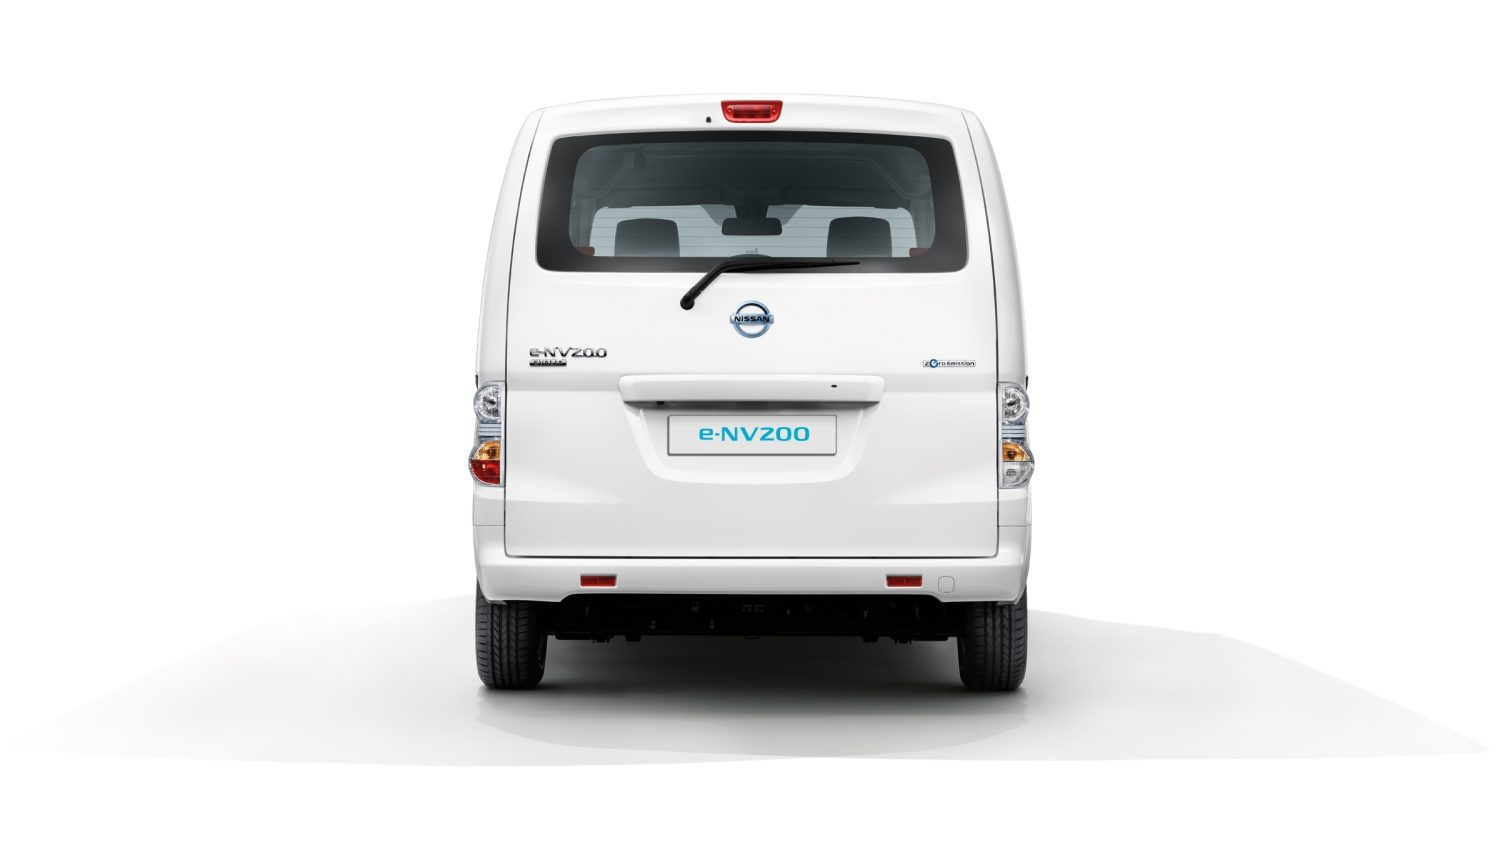 Nissan e-NV200 | Combi | Electric vehicle exterior rear